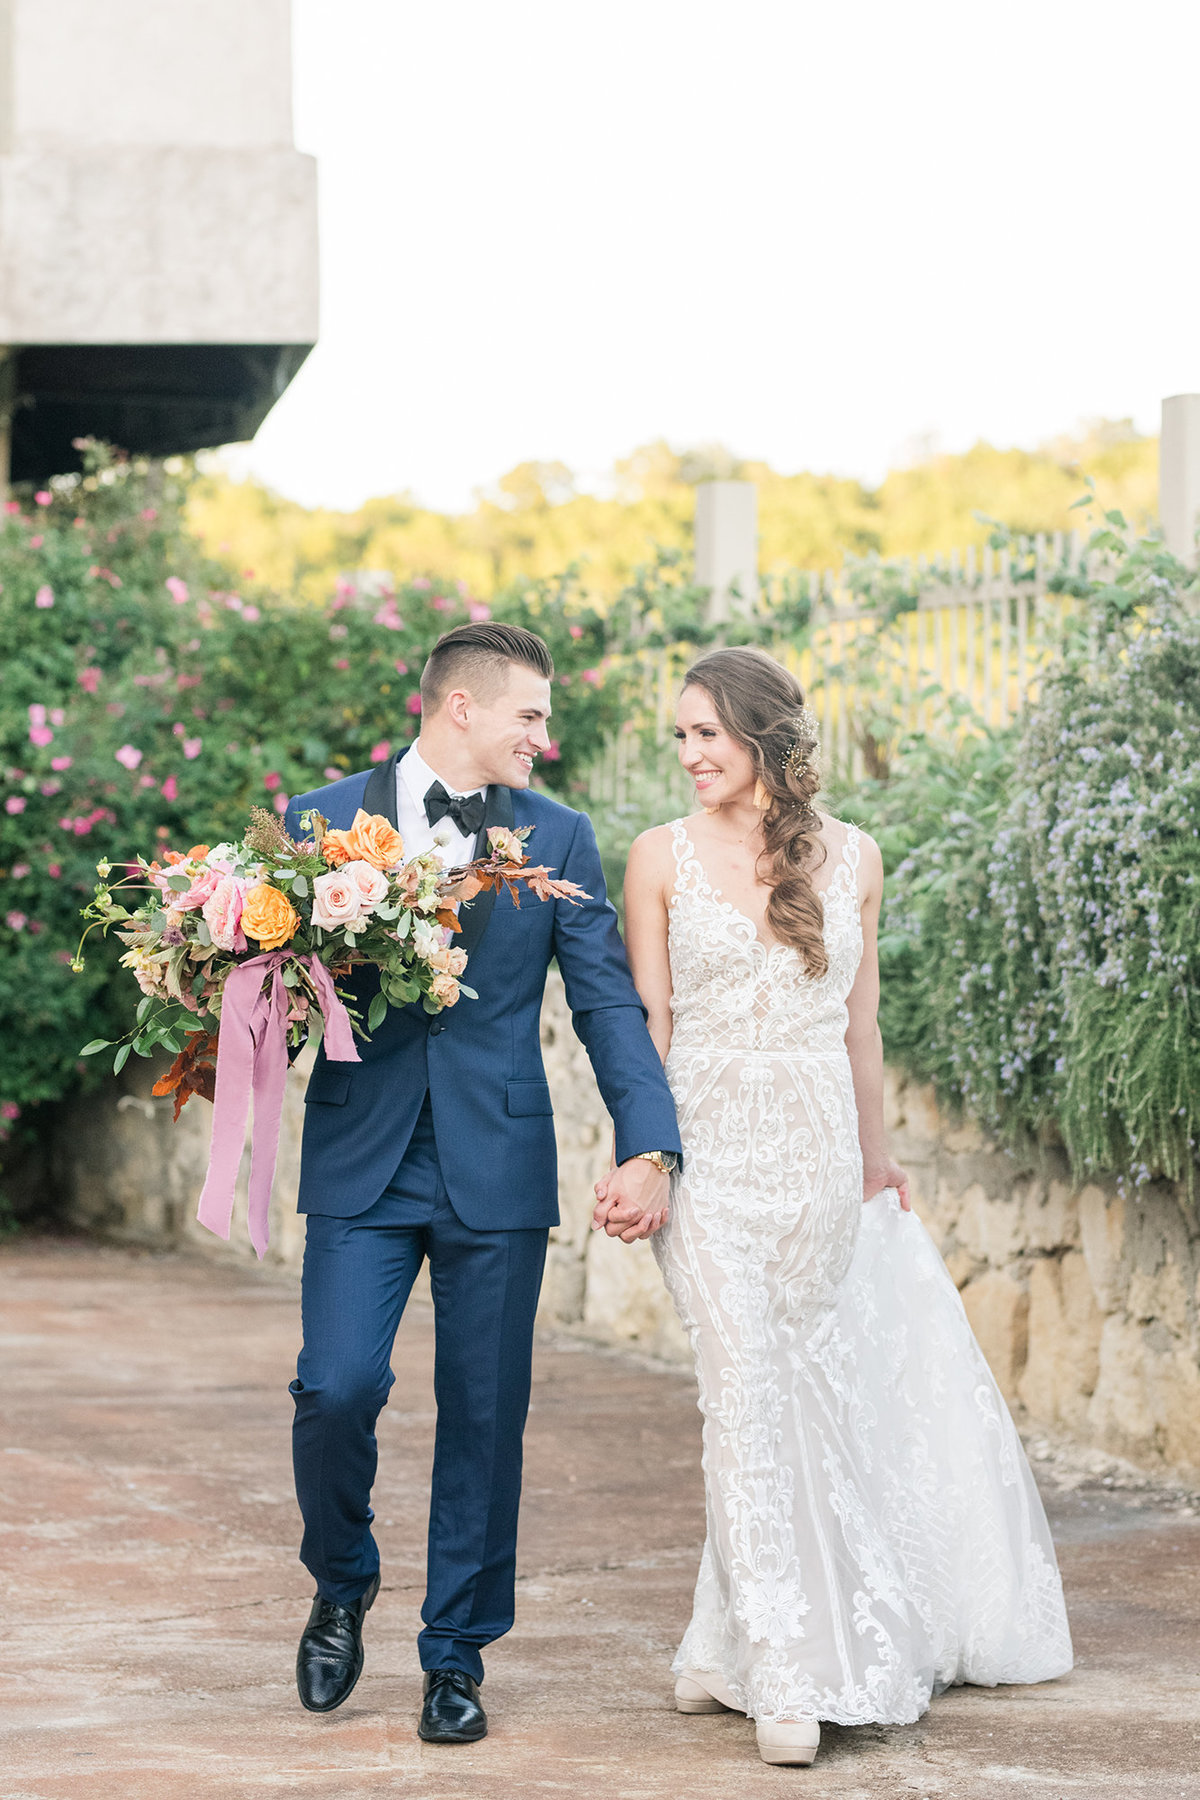 Villa Antonia Wedding Photographer captures couple leaving venue with fall bridal bouquet